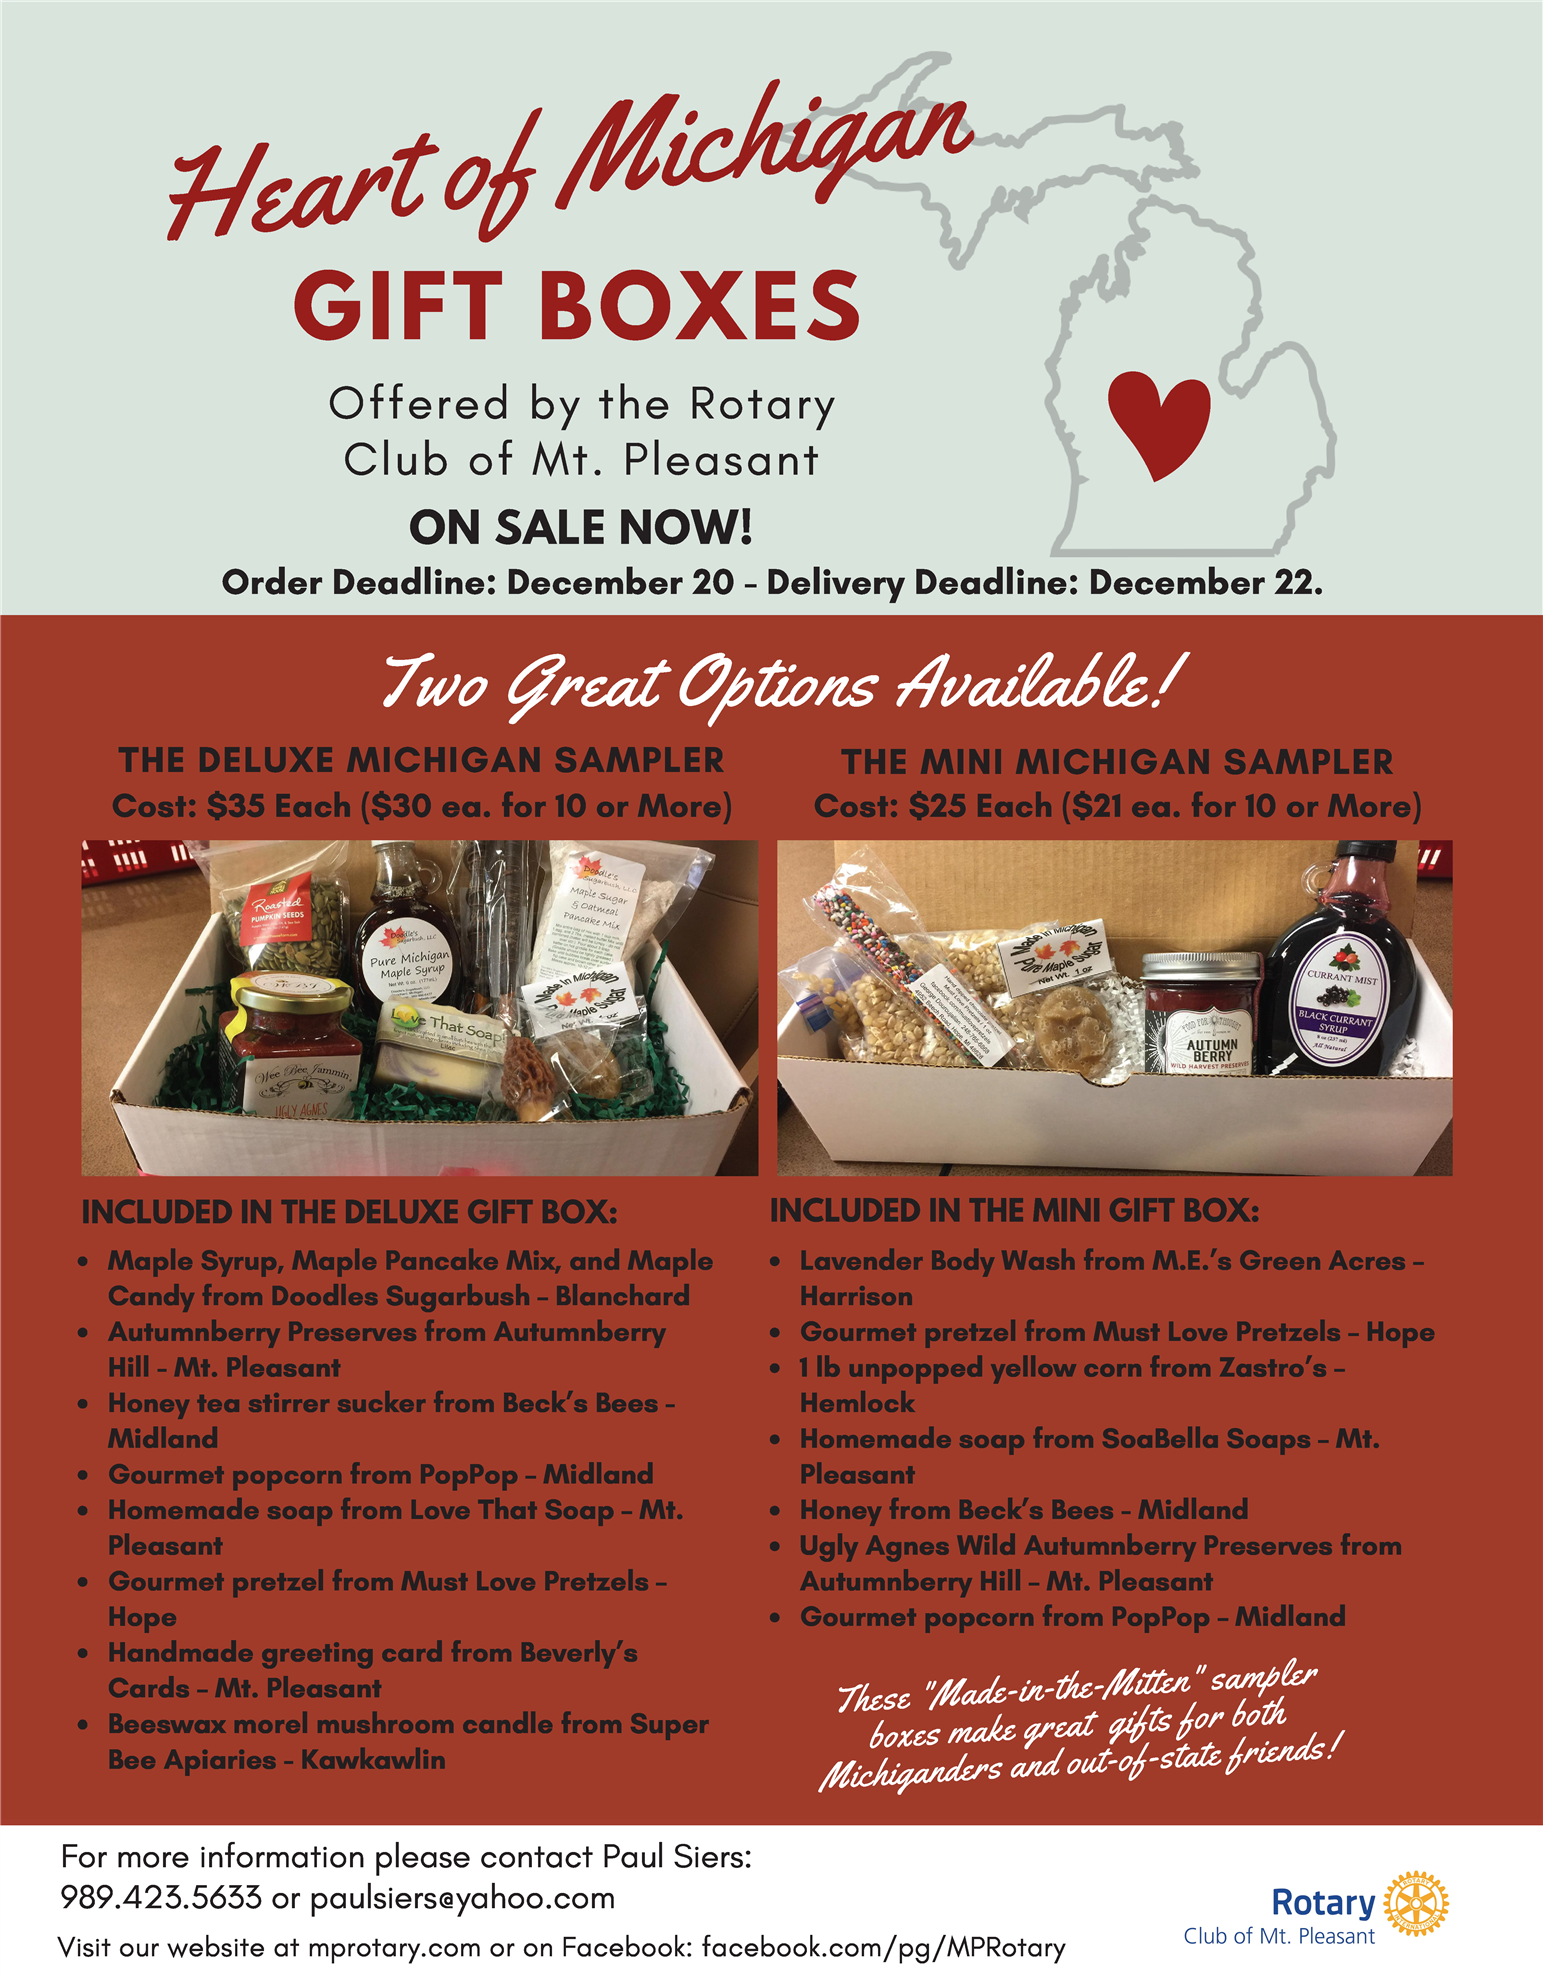 Heart of Michigan Gift Boxes